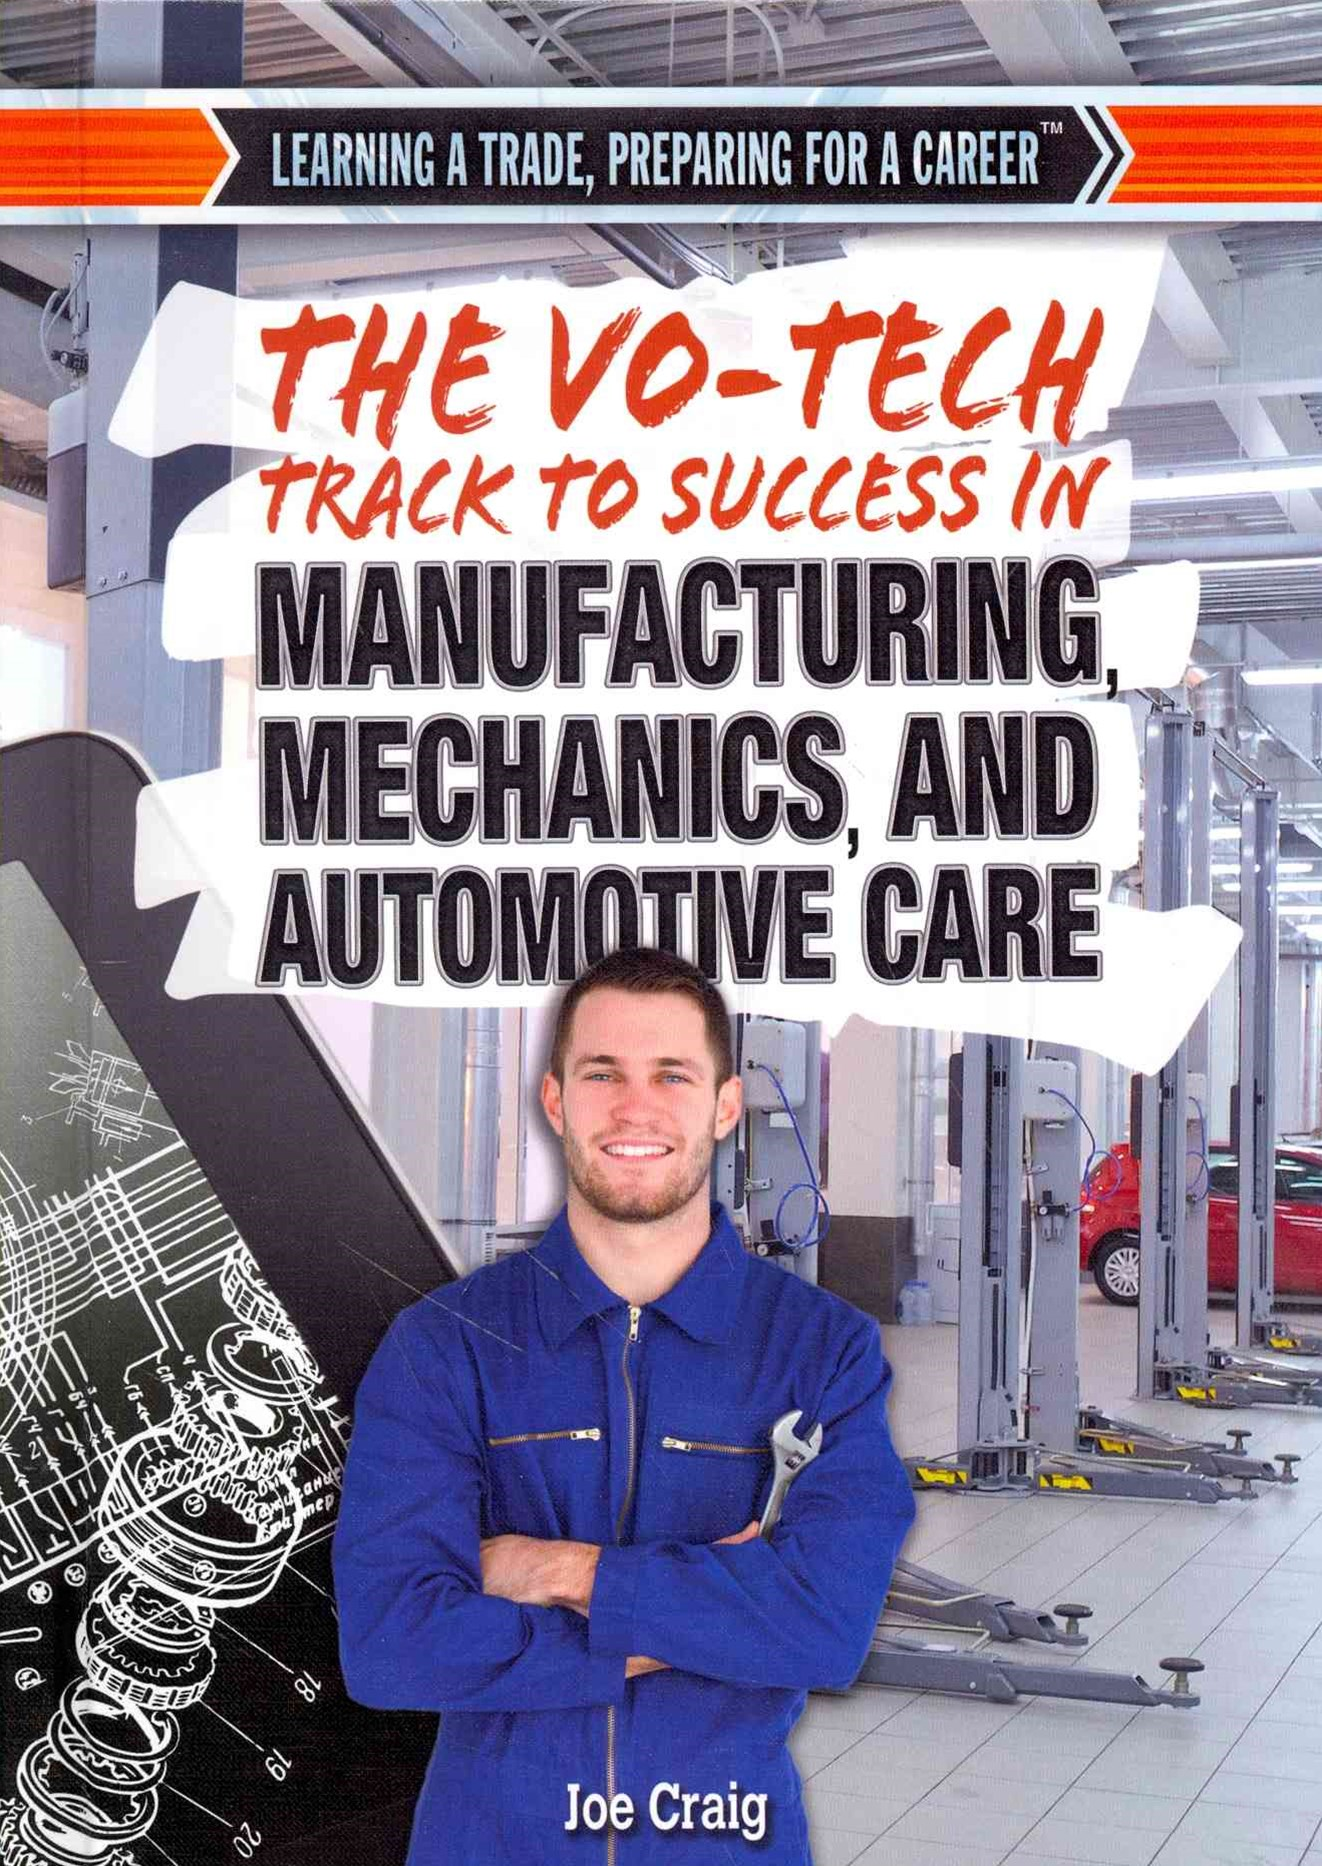 The Vo-Tech Track to Success in Manufacturing, Mechanics, and Automotive Care